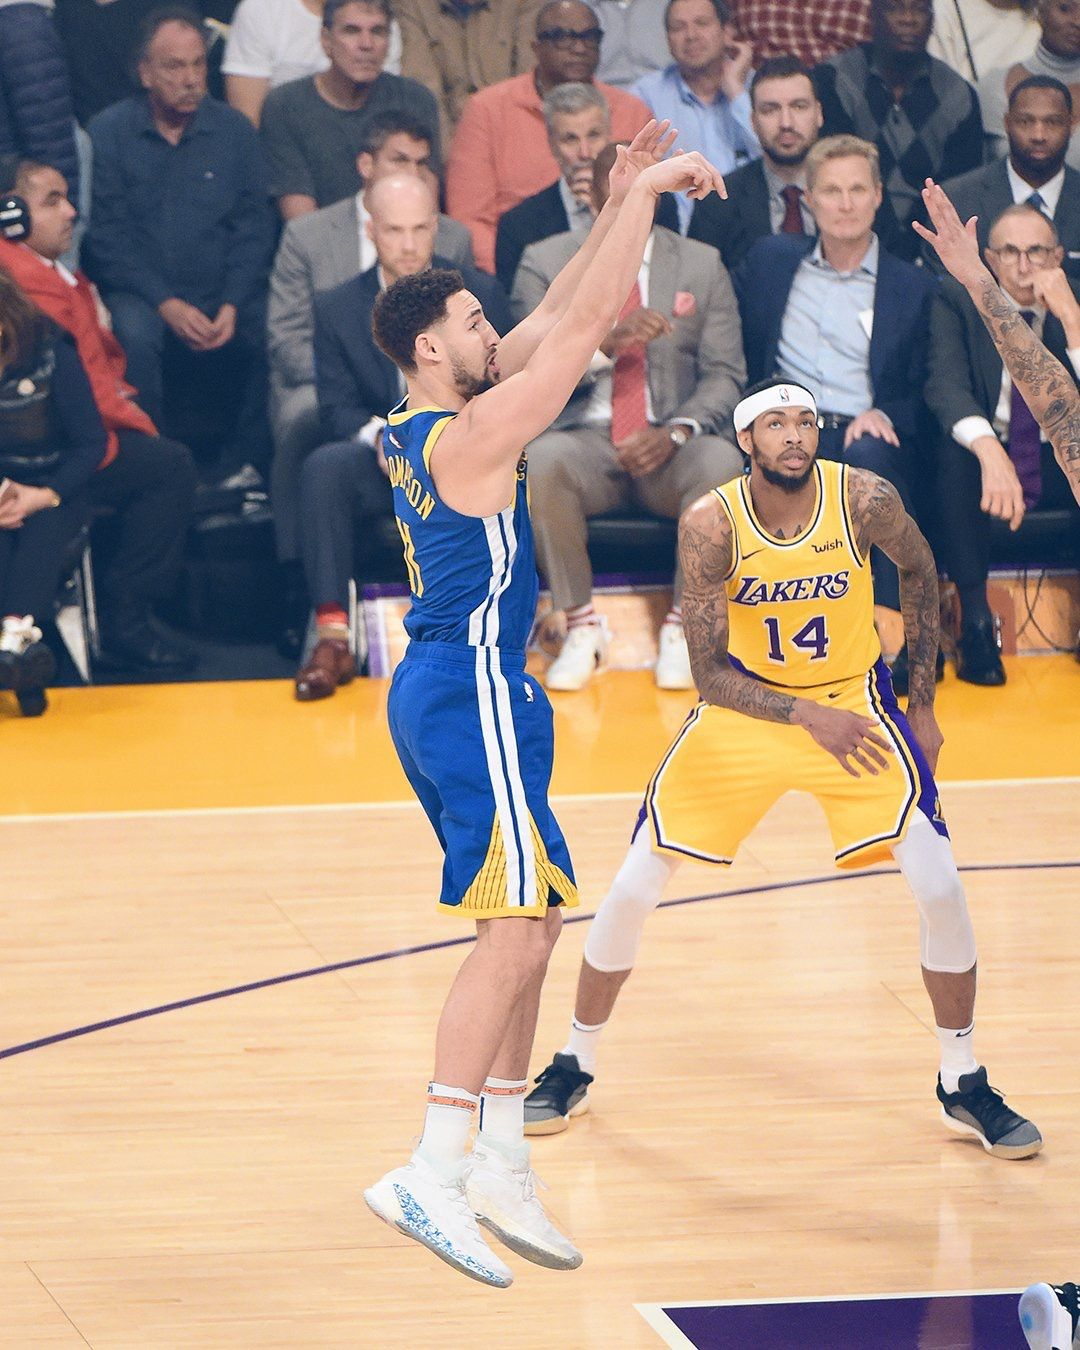 Los Angeles California 1 21 19 Klaythompson Showcased Another Outburst On Scoring 44 Points As He Became First P Klay Thompson Nba Champions Nba Players